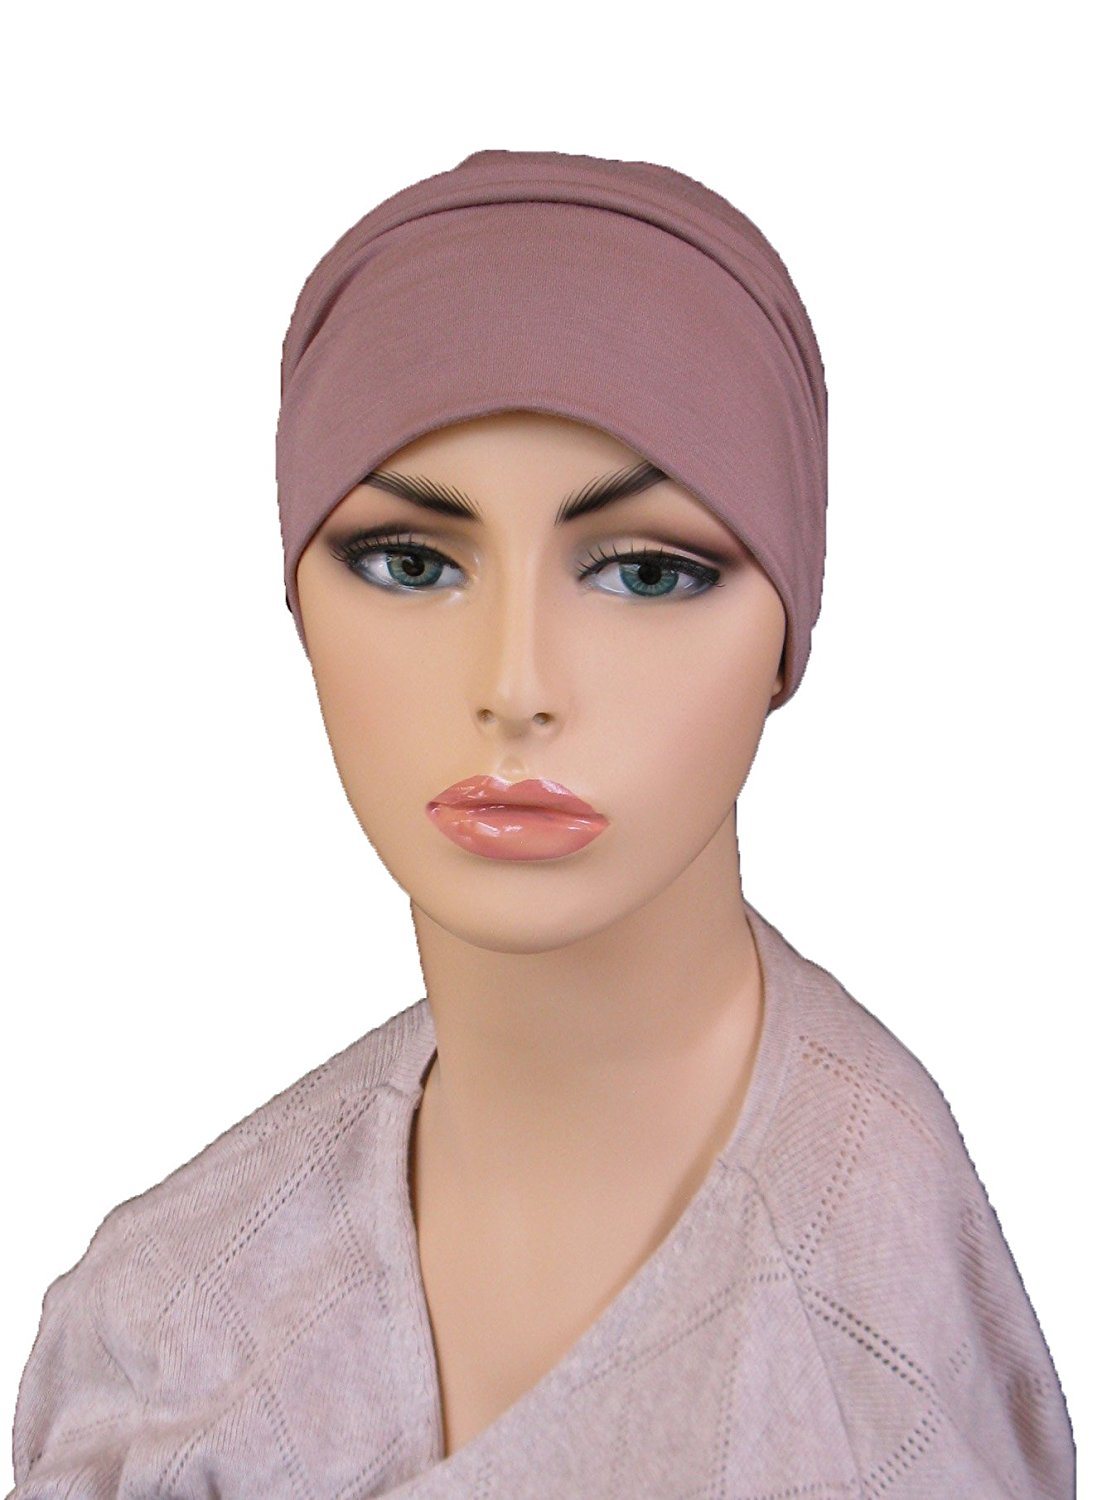 90d7e9724d880 Get Quotations · All Things Blooming Chemo Headwear Mens or Womens Bamboo  Soft Chemo Caps